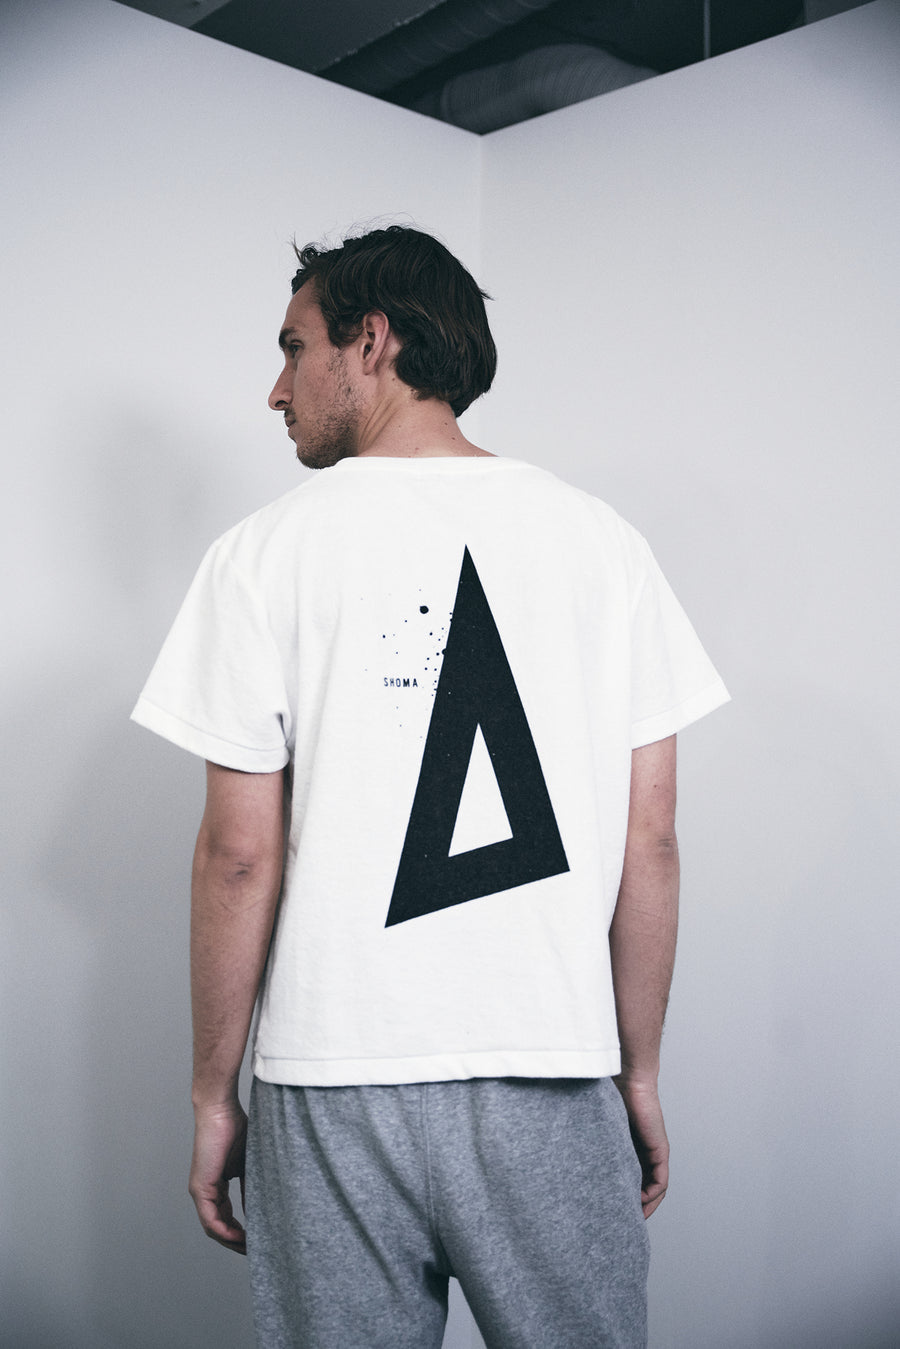 PILE CREW NECK T[Triangle of SHOMA]- White